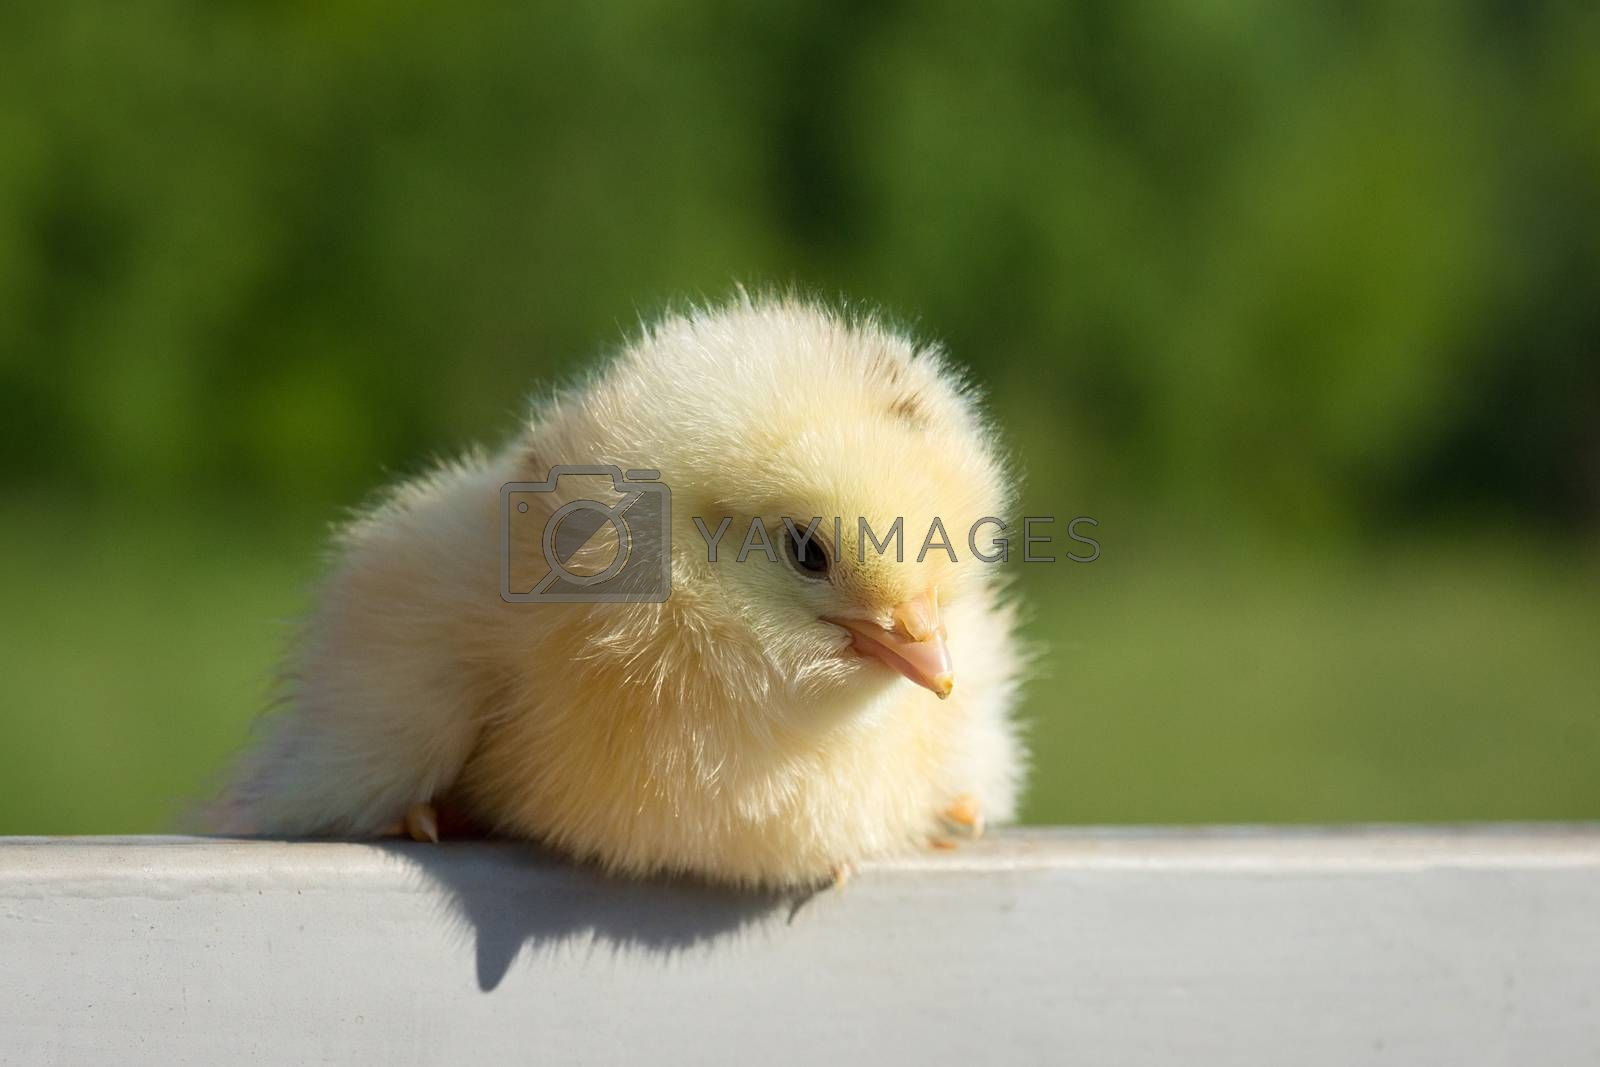 A small yellow chicken on the fence